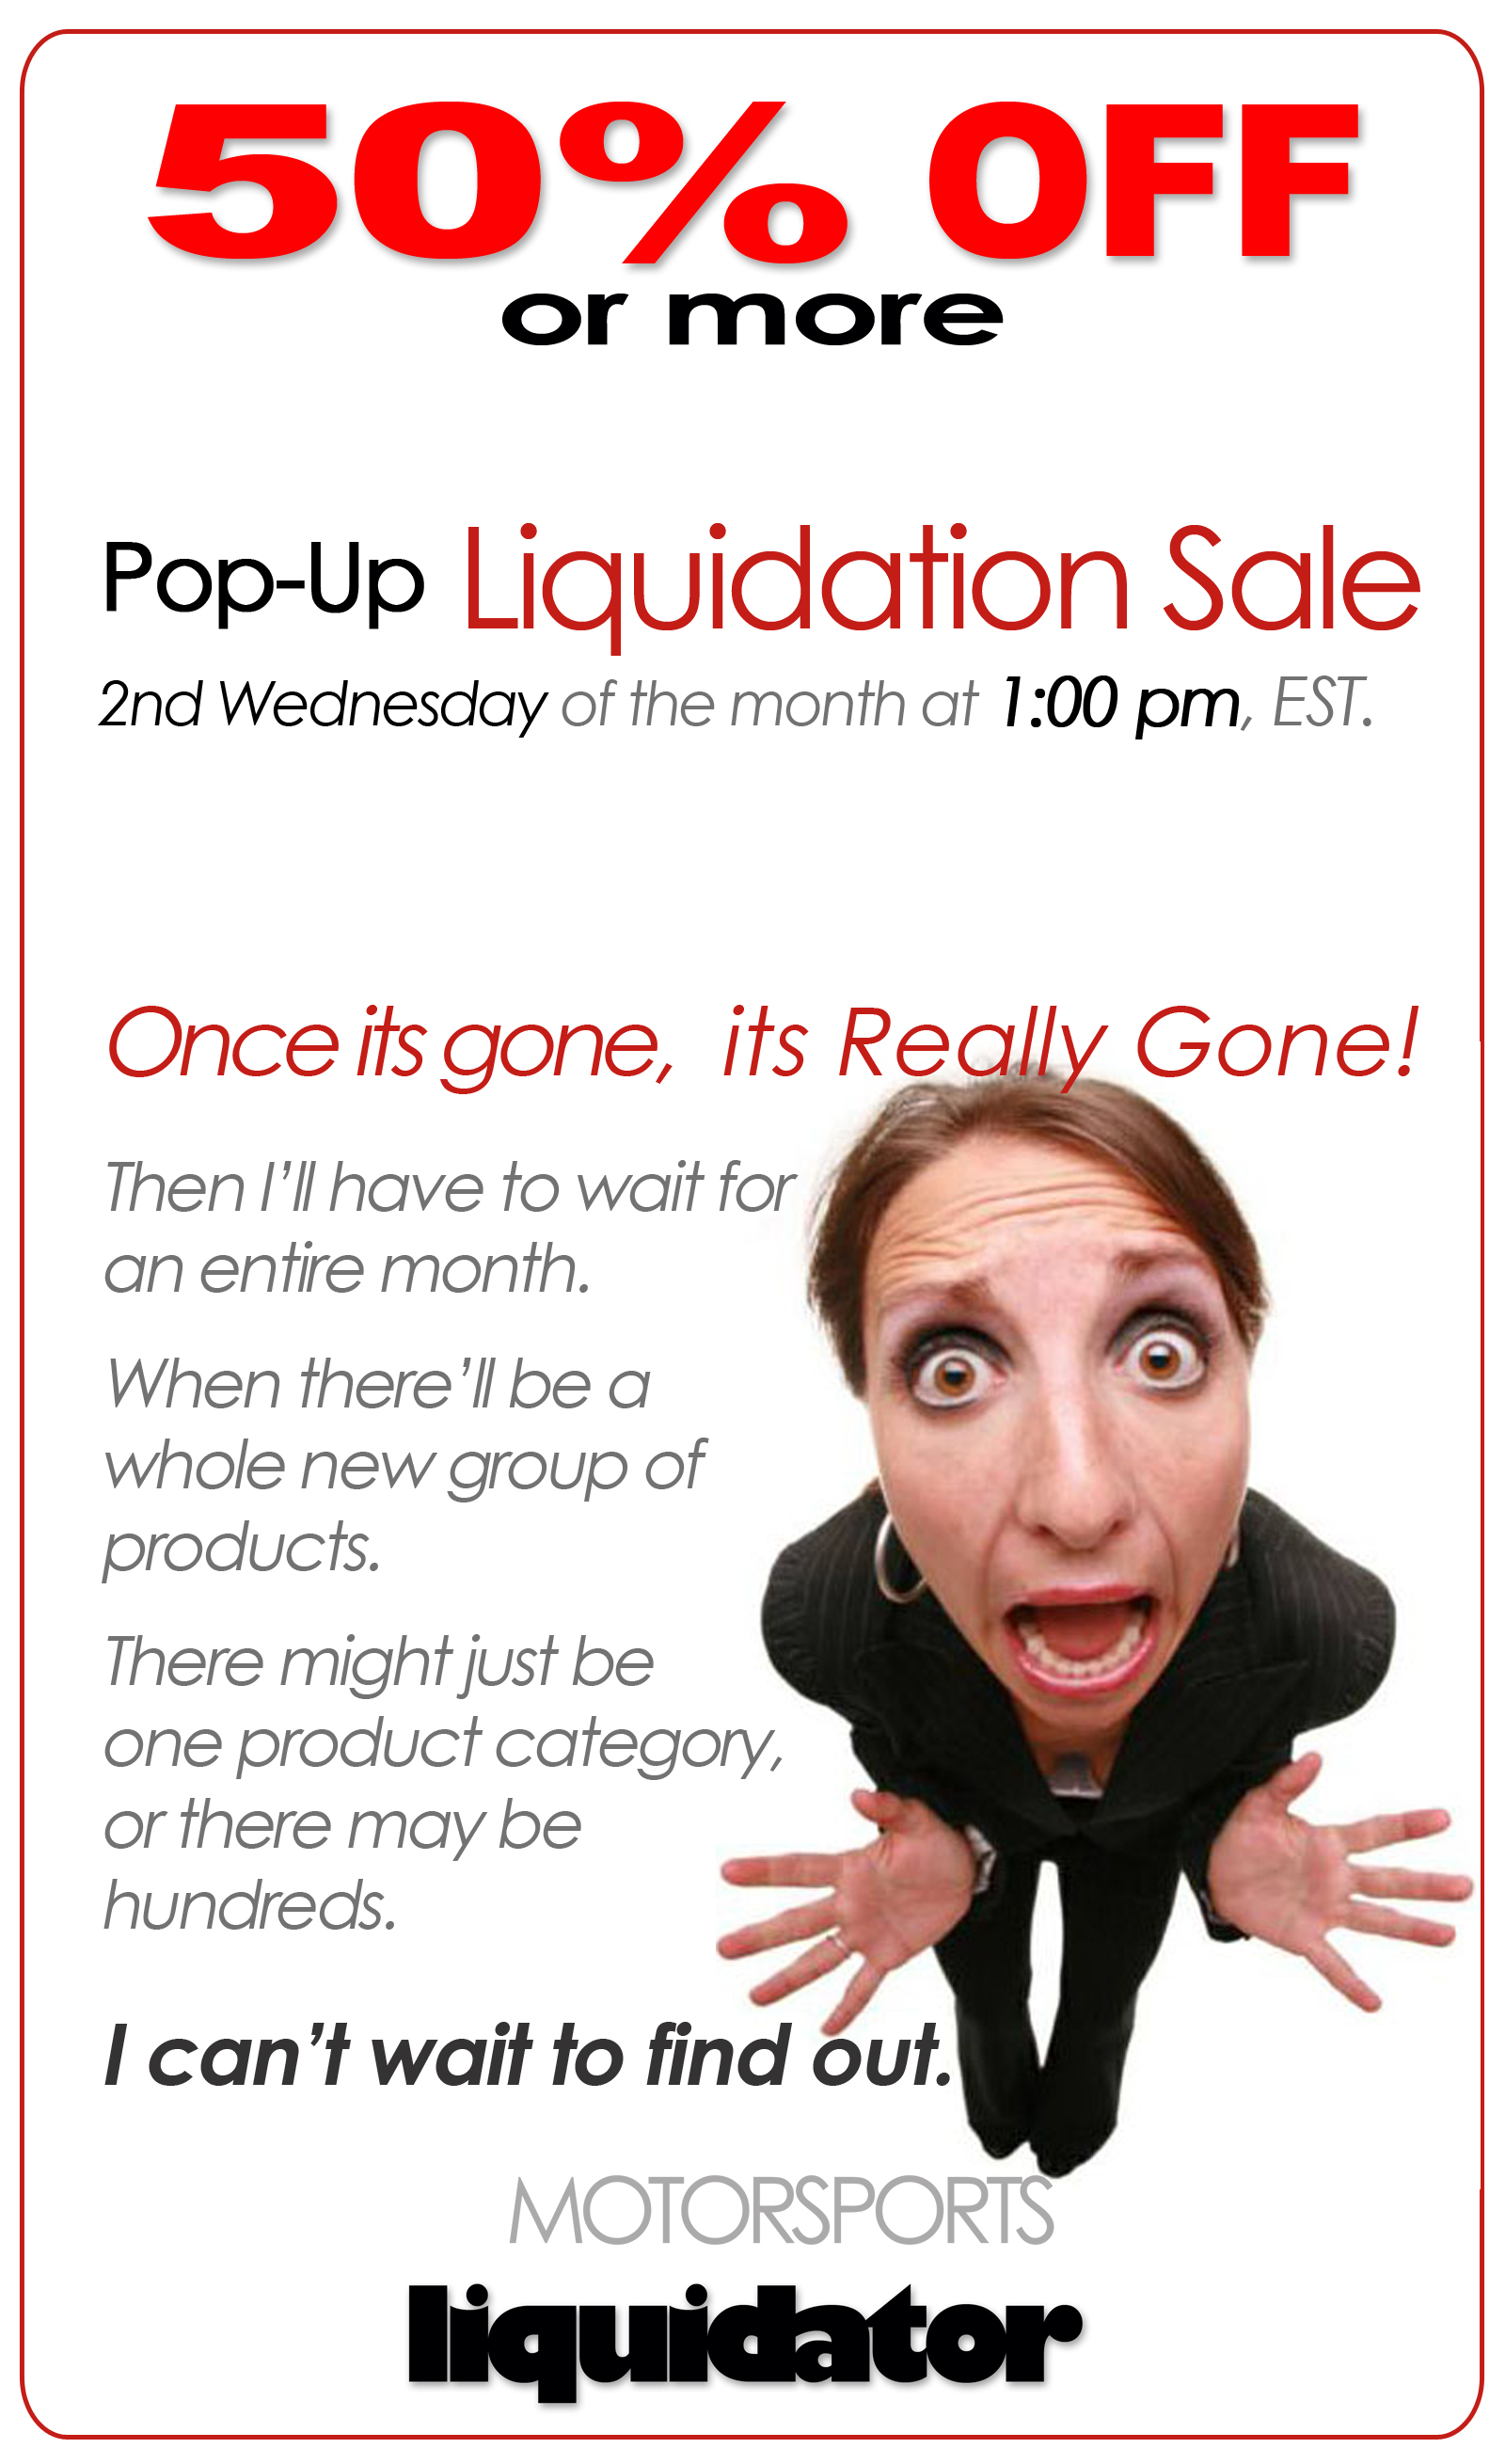 Pop-Up Liquidation Sale - MotorSports Liquidator